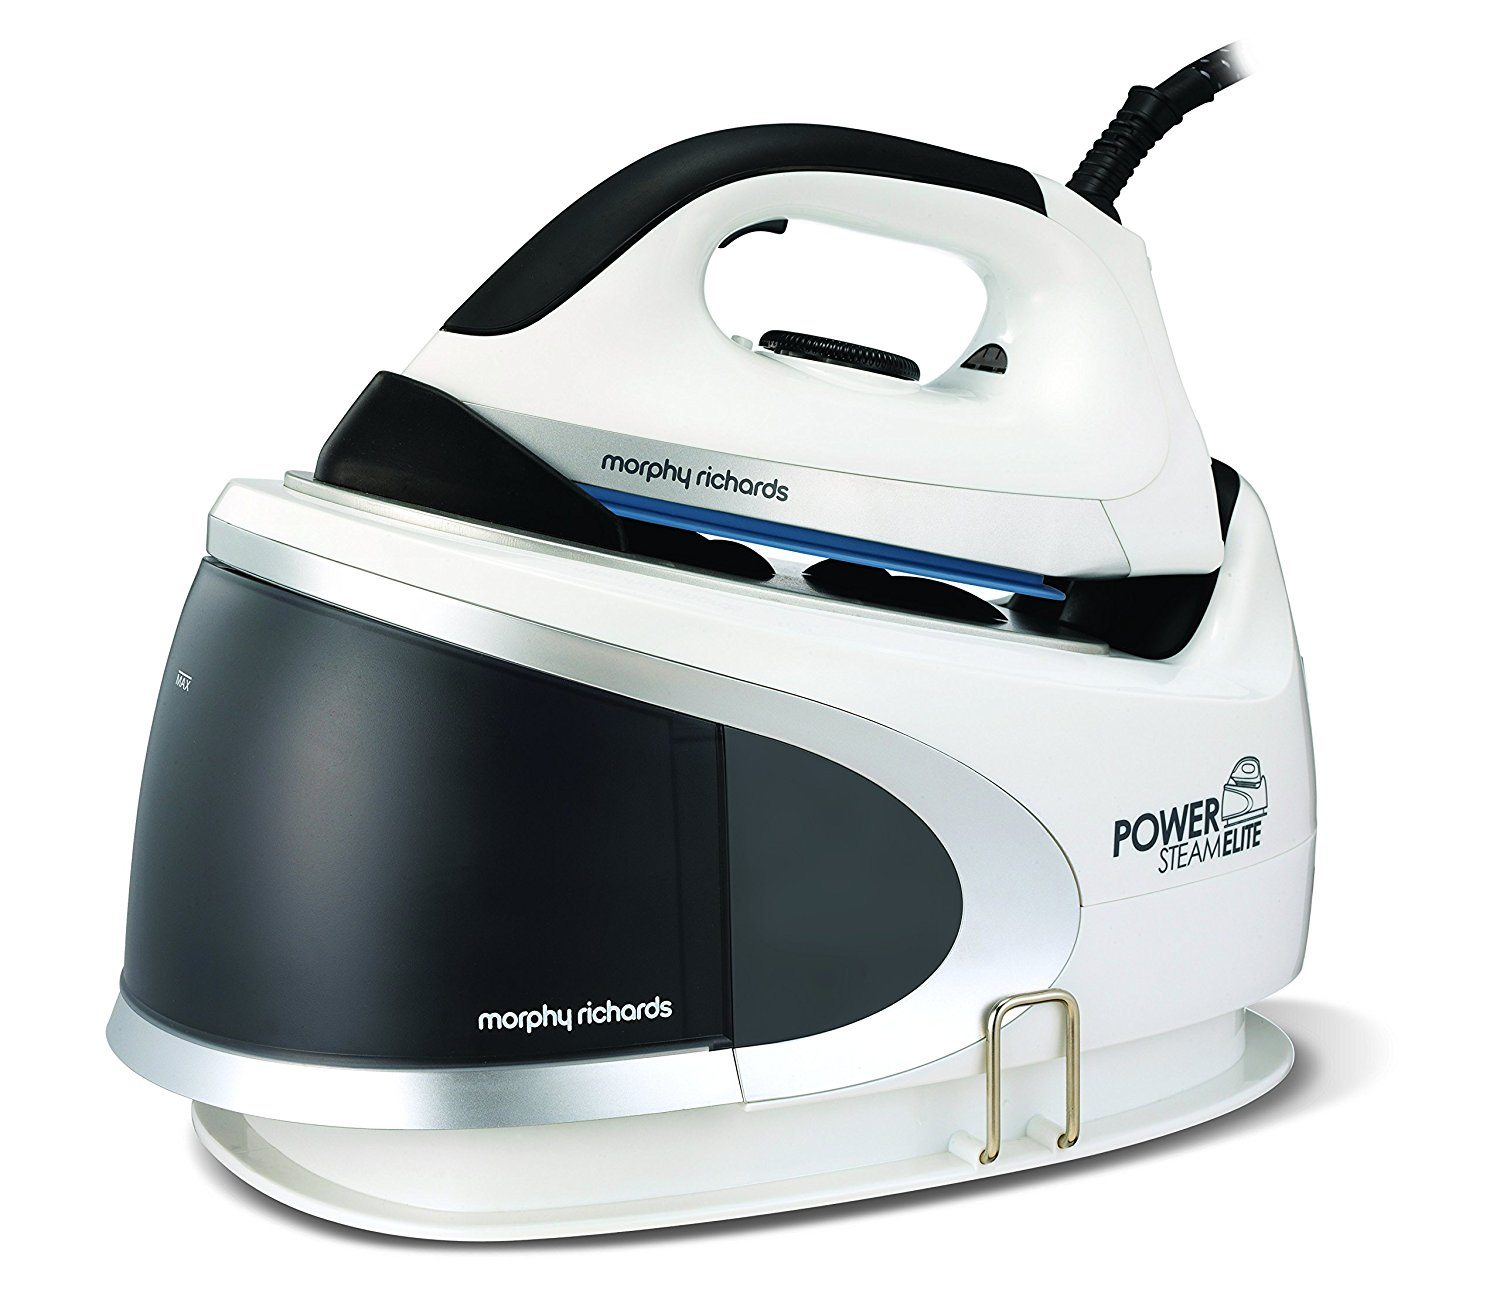 Morphy Richards Power Steam Elite 330014 Steam Generator Iron, 2400 W